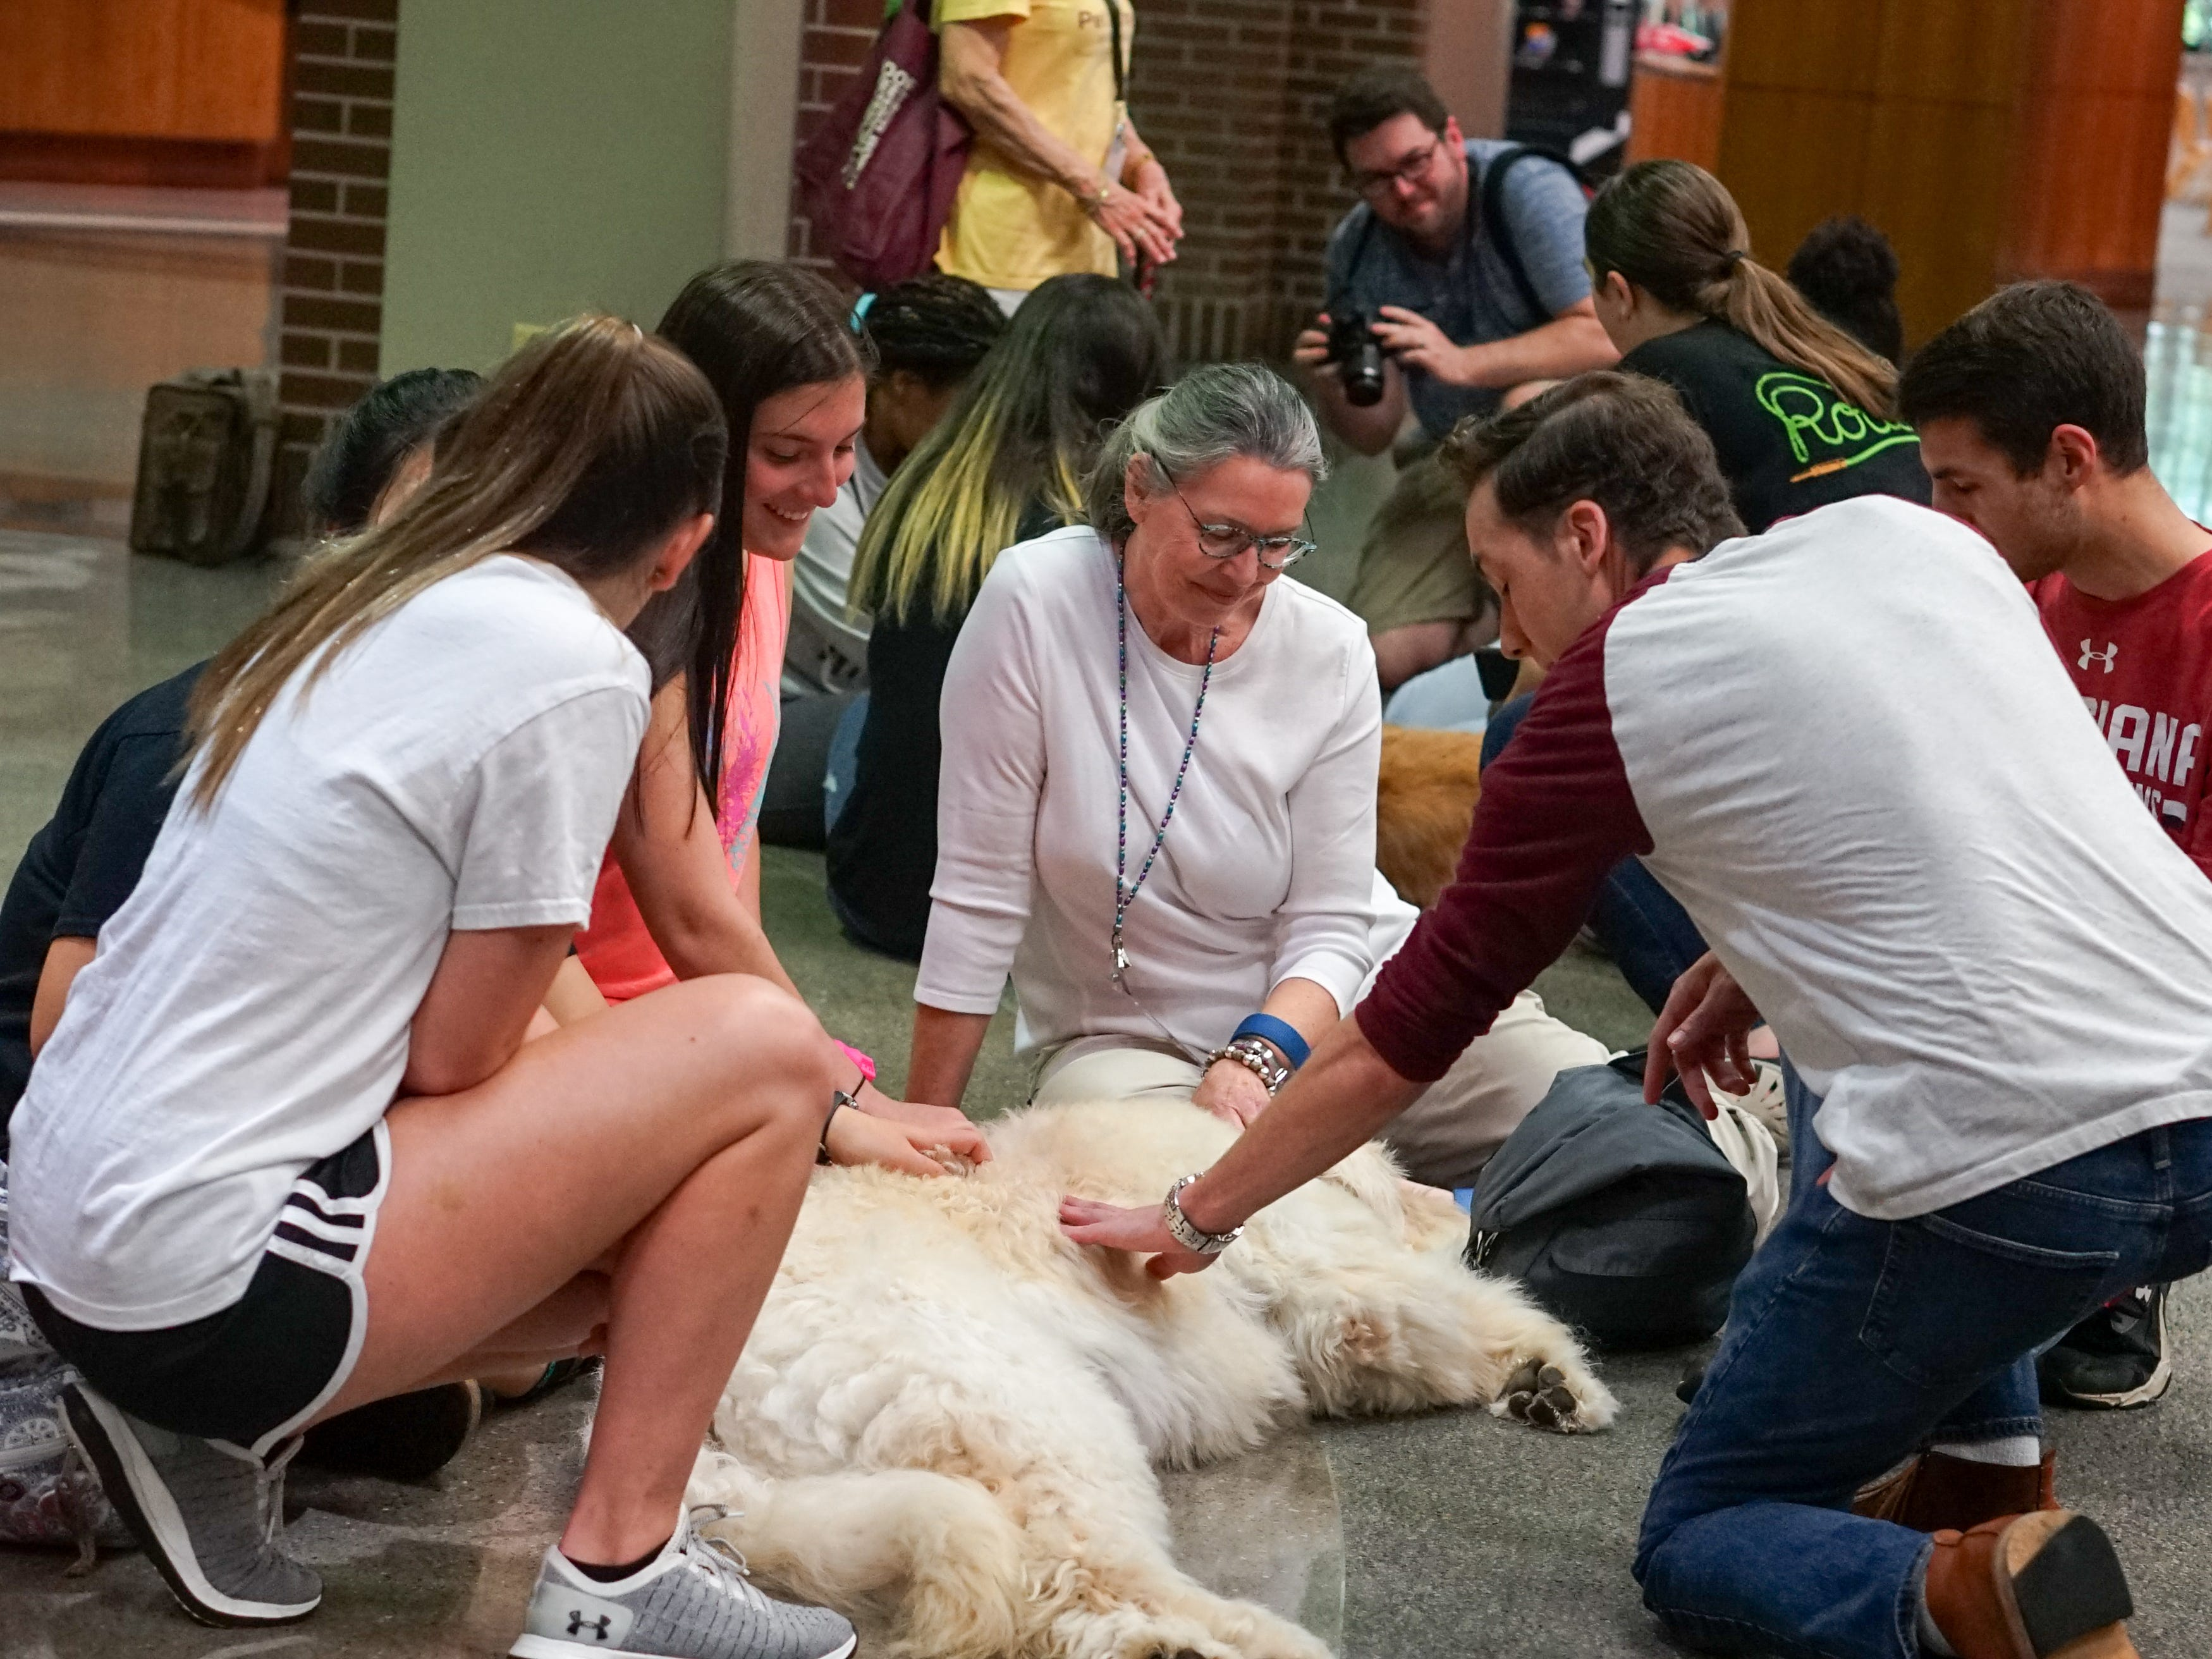 Students pet a therapy dog in the Edith Garland Dupré Library Wednesday, May 8, 2019. The University of Louisiana at Lafayette helps students to relieve stress during finals week by bringing therapy animals, to the library as part of Stress Relief Week. The therapy dogs are provided by Pet Partners of Acadiana, a non-profit organization with registered therapy animals, including birds, miniature horses, rabbits and  llamas.